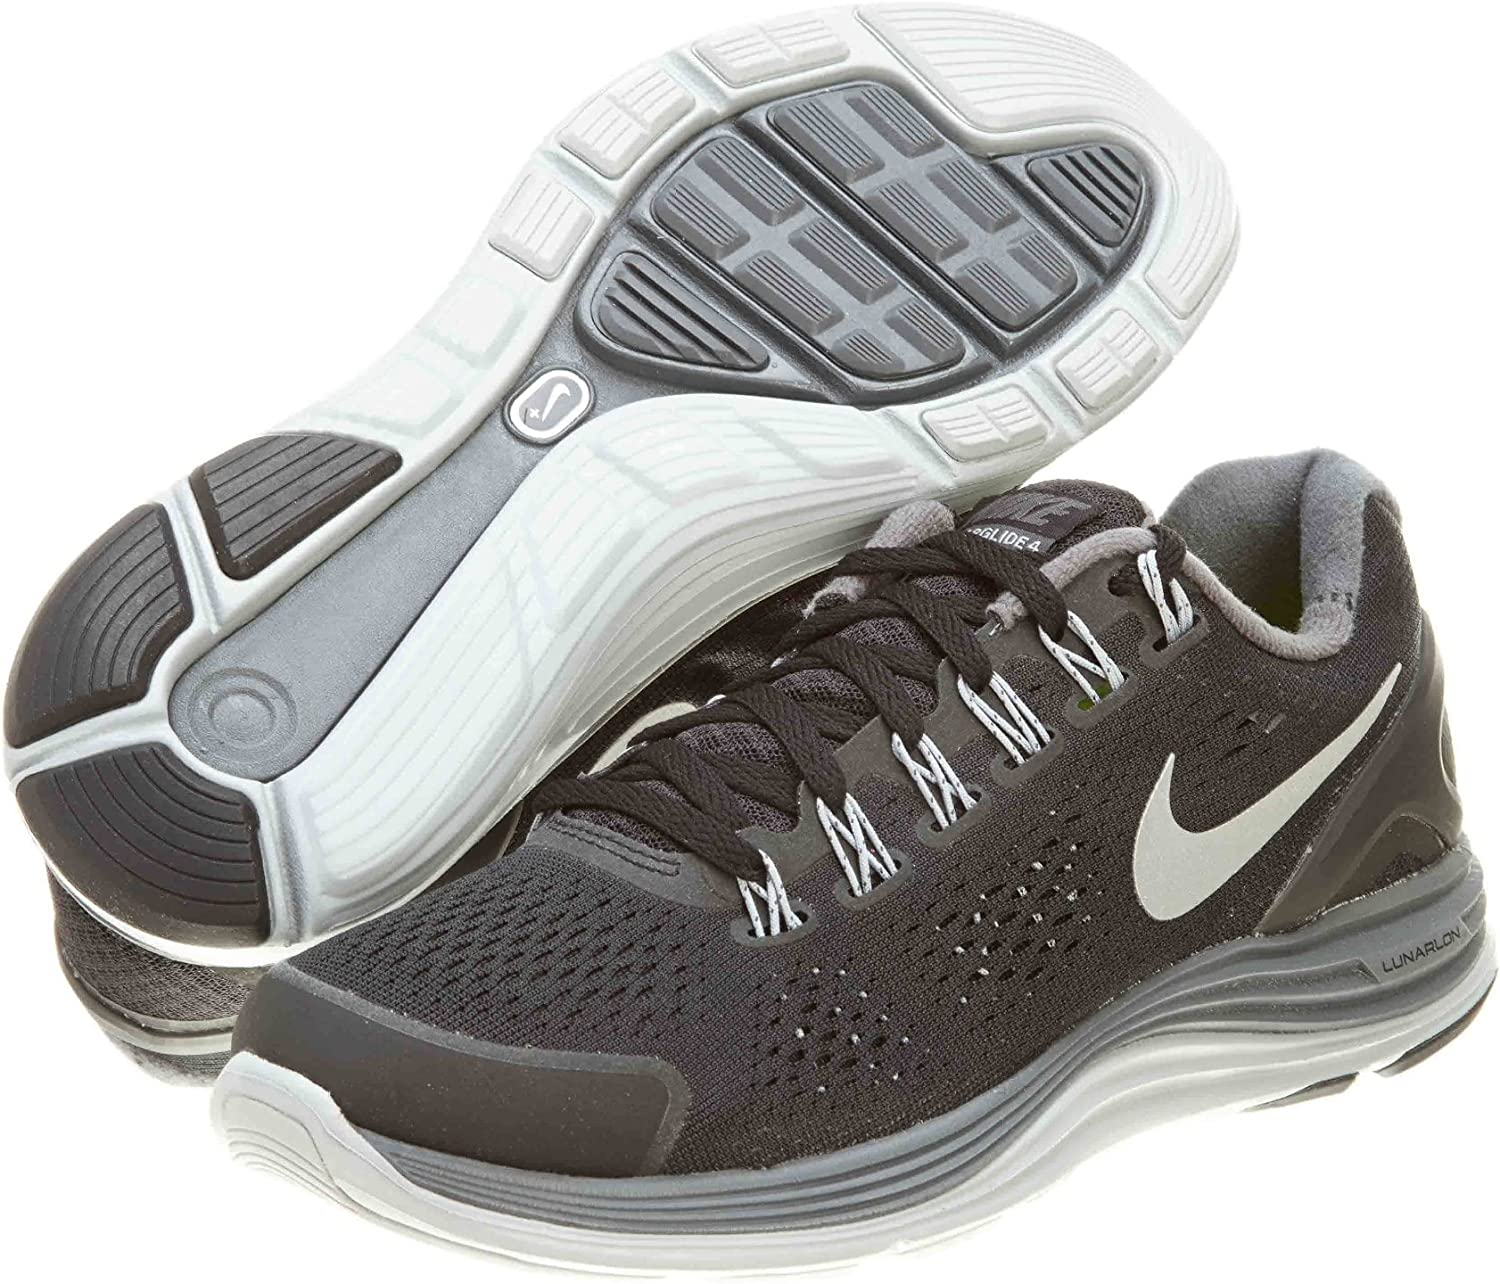 Nike Womens Lunarglide 4 Black Silver Grey 524978-001